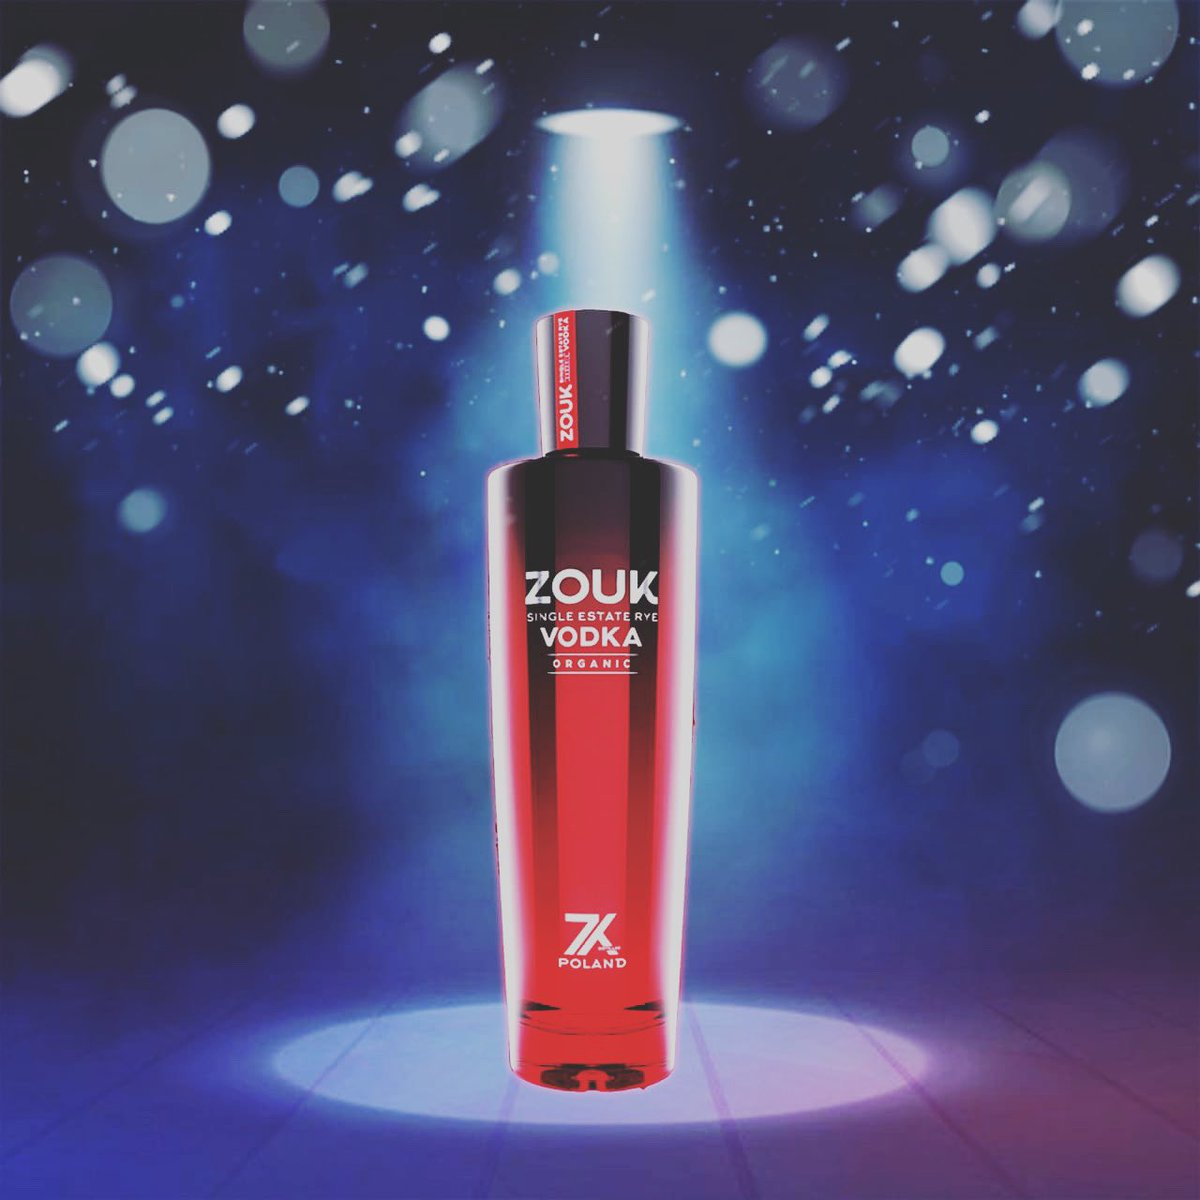 Make Zouk Vodka your new favourite for Tuesday Evenings   #tuesdayvibes #zoukvodka #vodkavibes #vodka🍸#tuesday